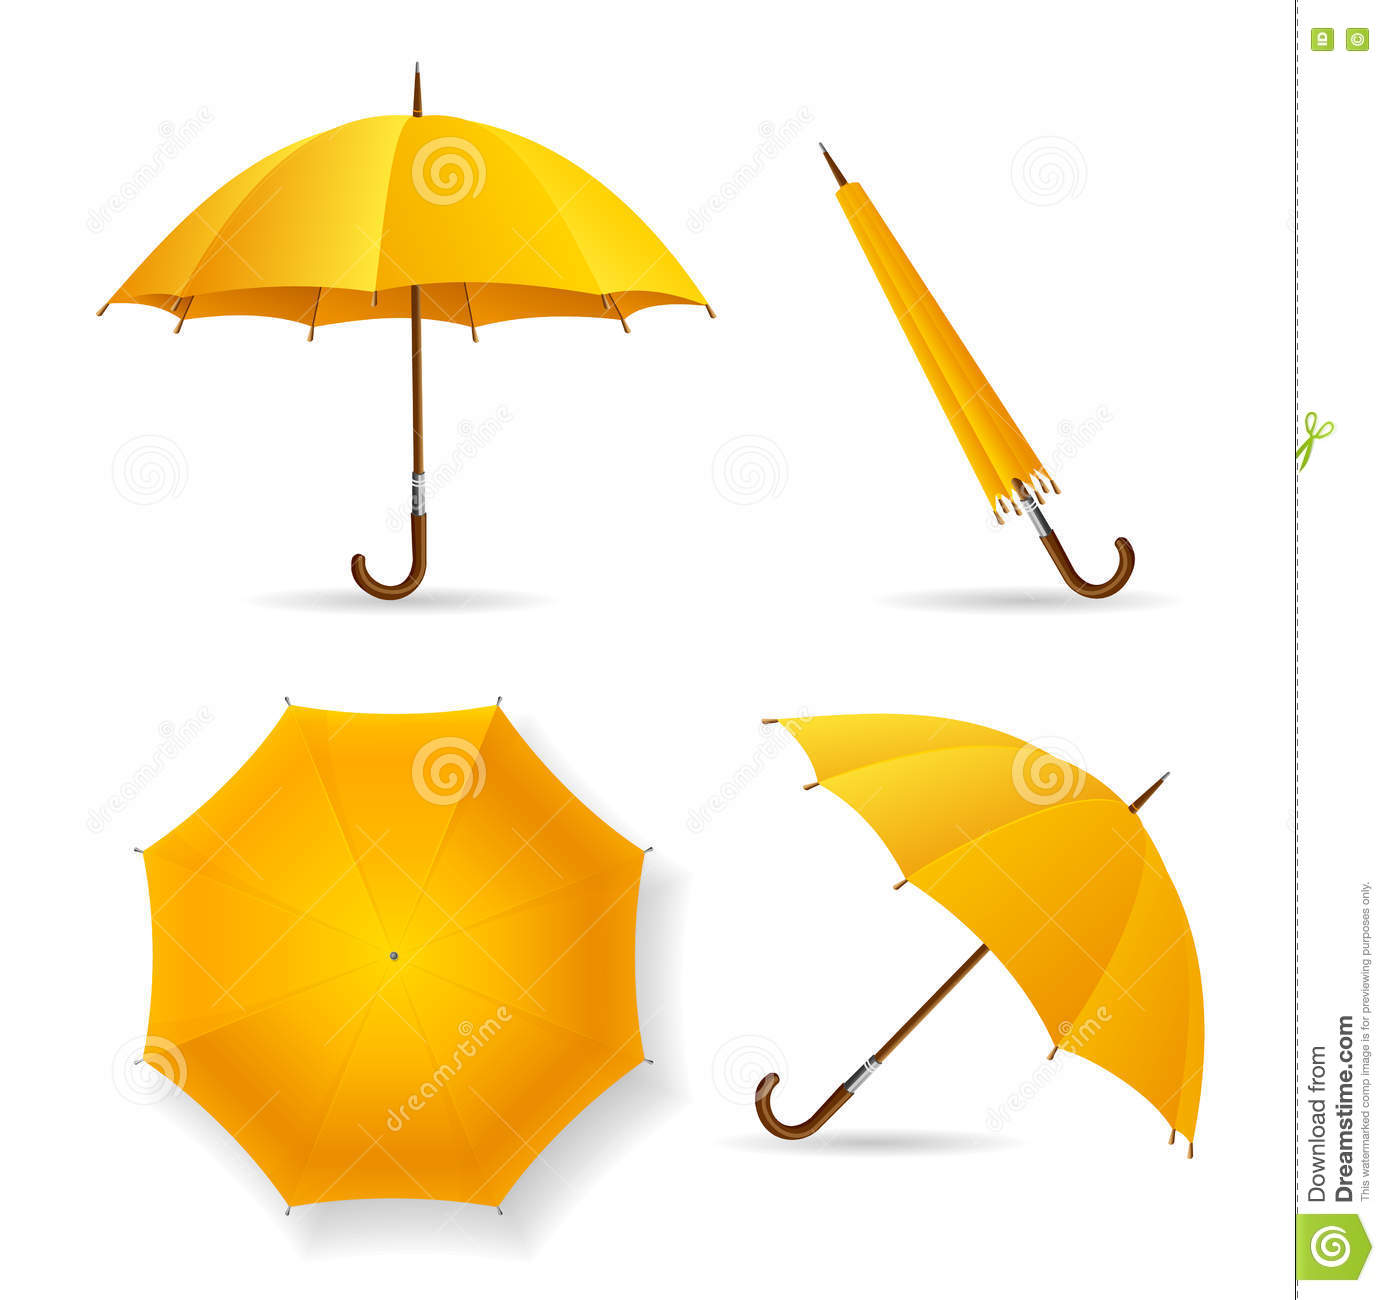 09688fd12 Yellow Umbrella Template Set. Vector Stock Vector - Illustration of ...